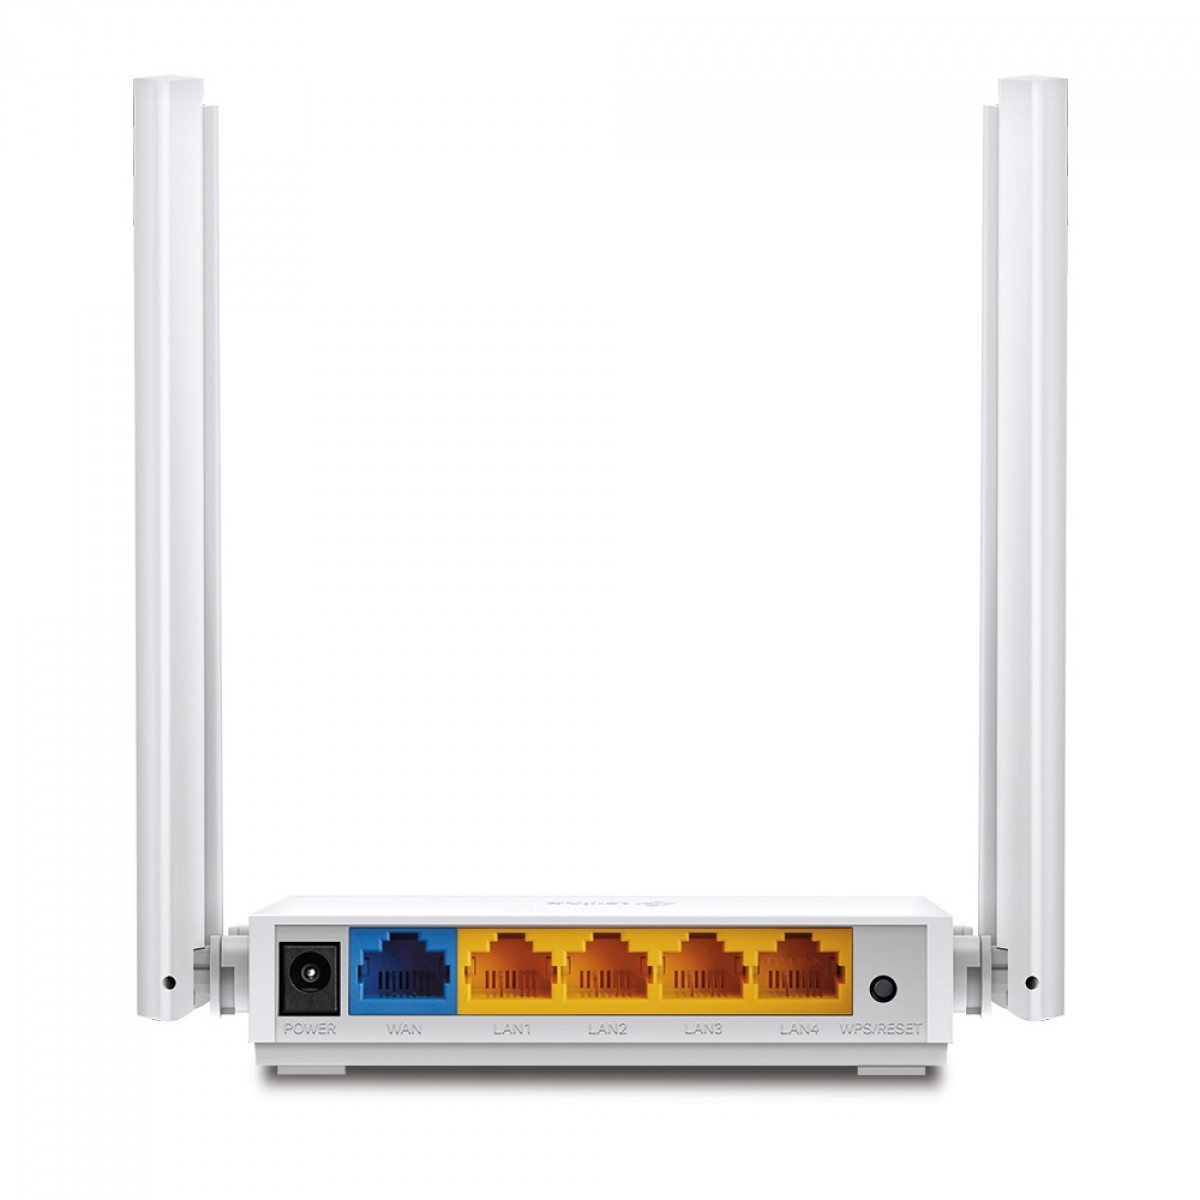 Roteador TP-LINK Wireless Archer C21, Dual Band, AC750, C21